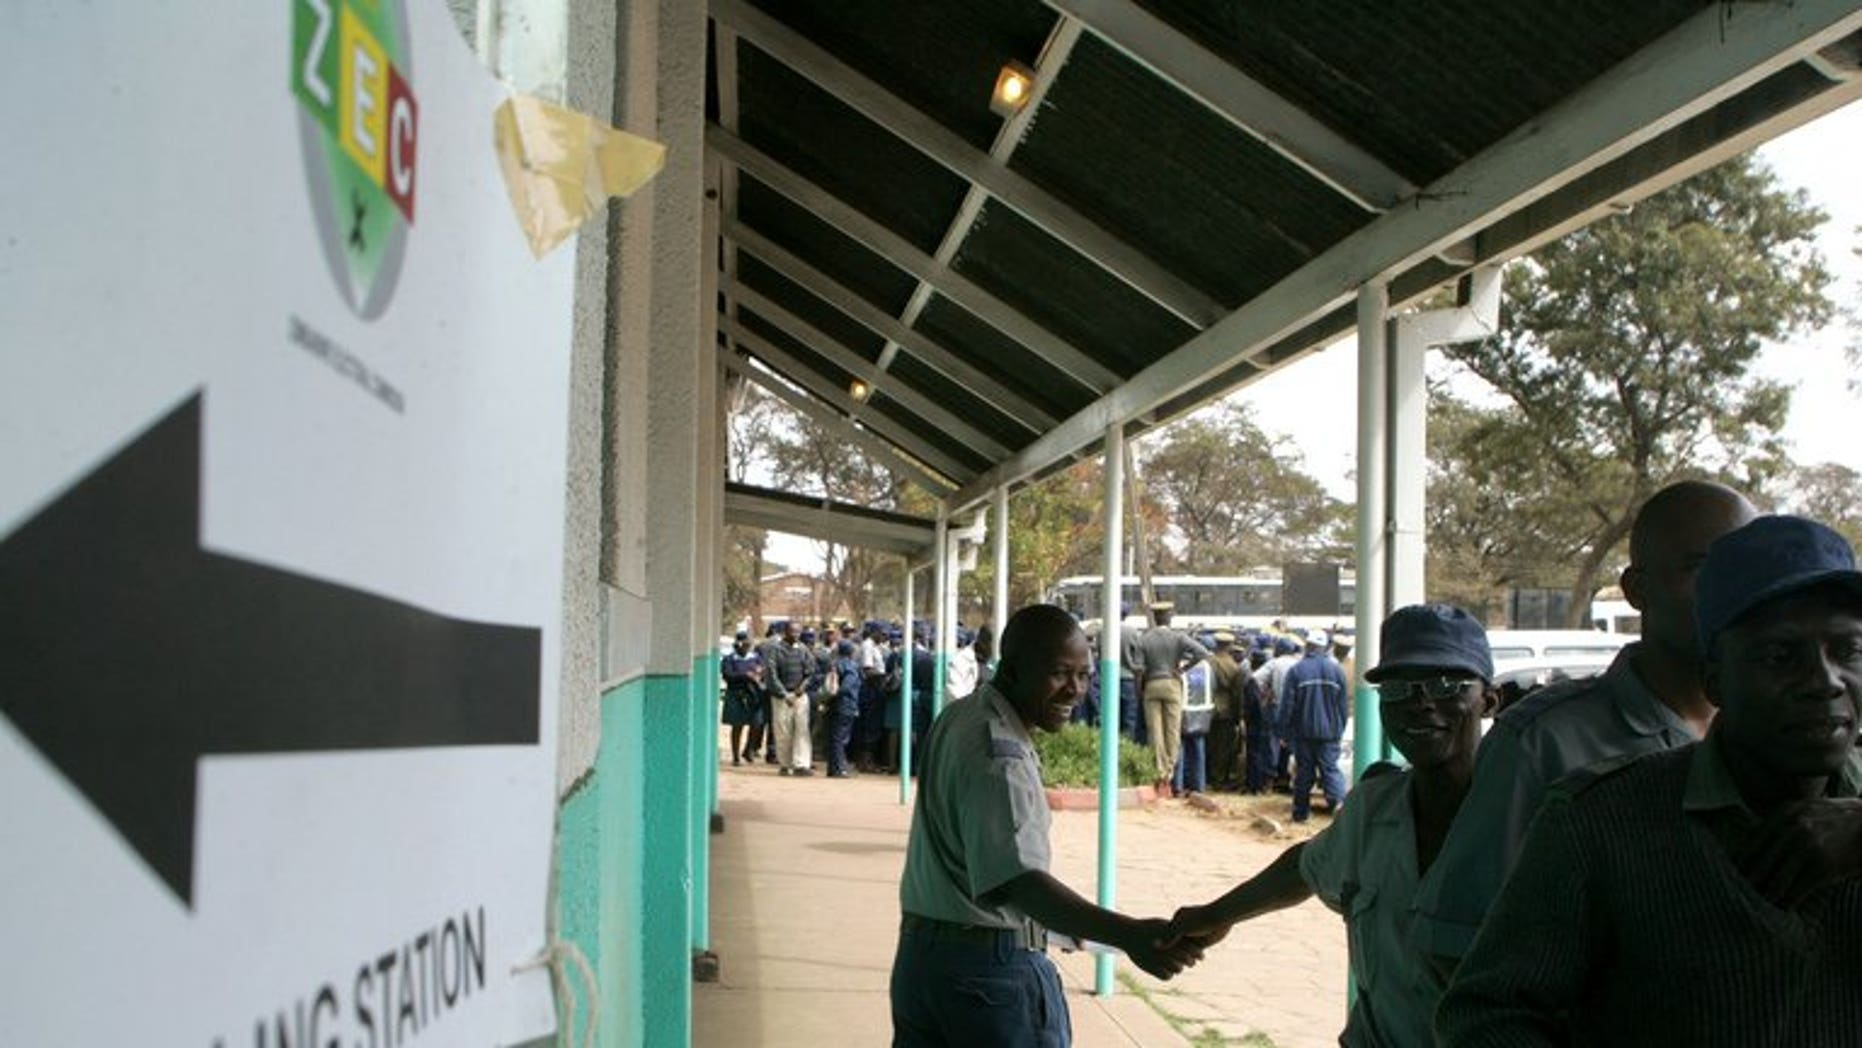 Police officers queue outside a polling station to vote during the special voting day for registered members of the police and army in Harare on July 14, 2013. Local election monitors called Monday for Zimbabwe to extend early voting for thousands of police officers and warned the country's electoral system was in disarray two weeks from a crucial presidential poll.